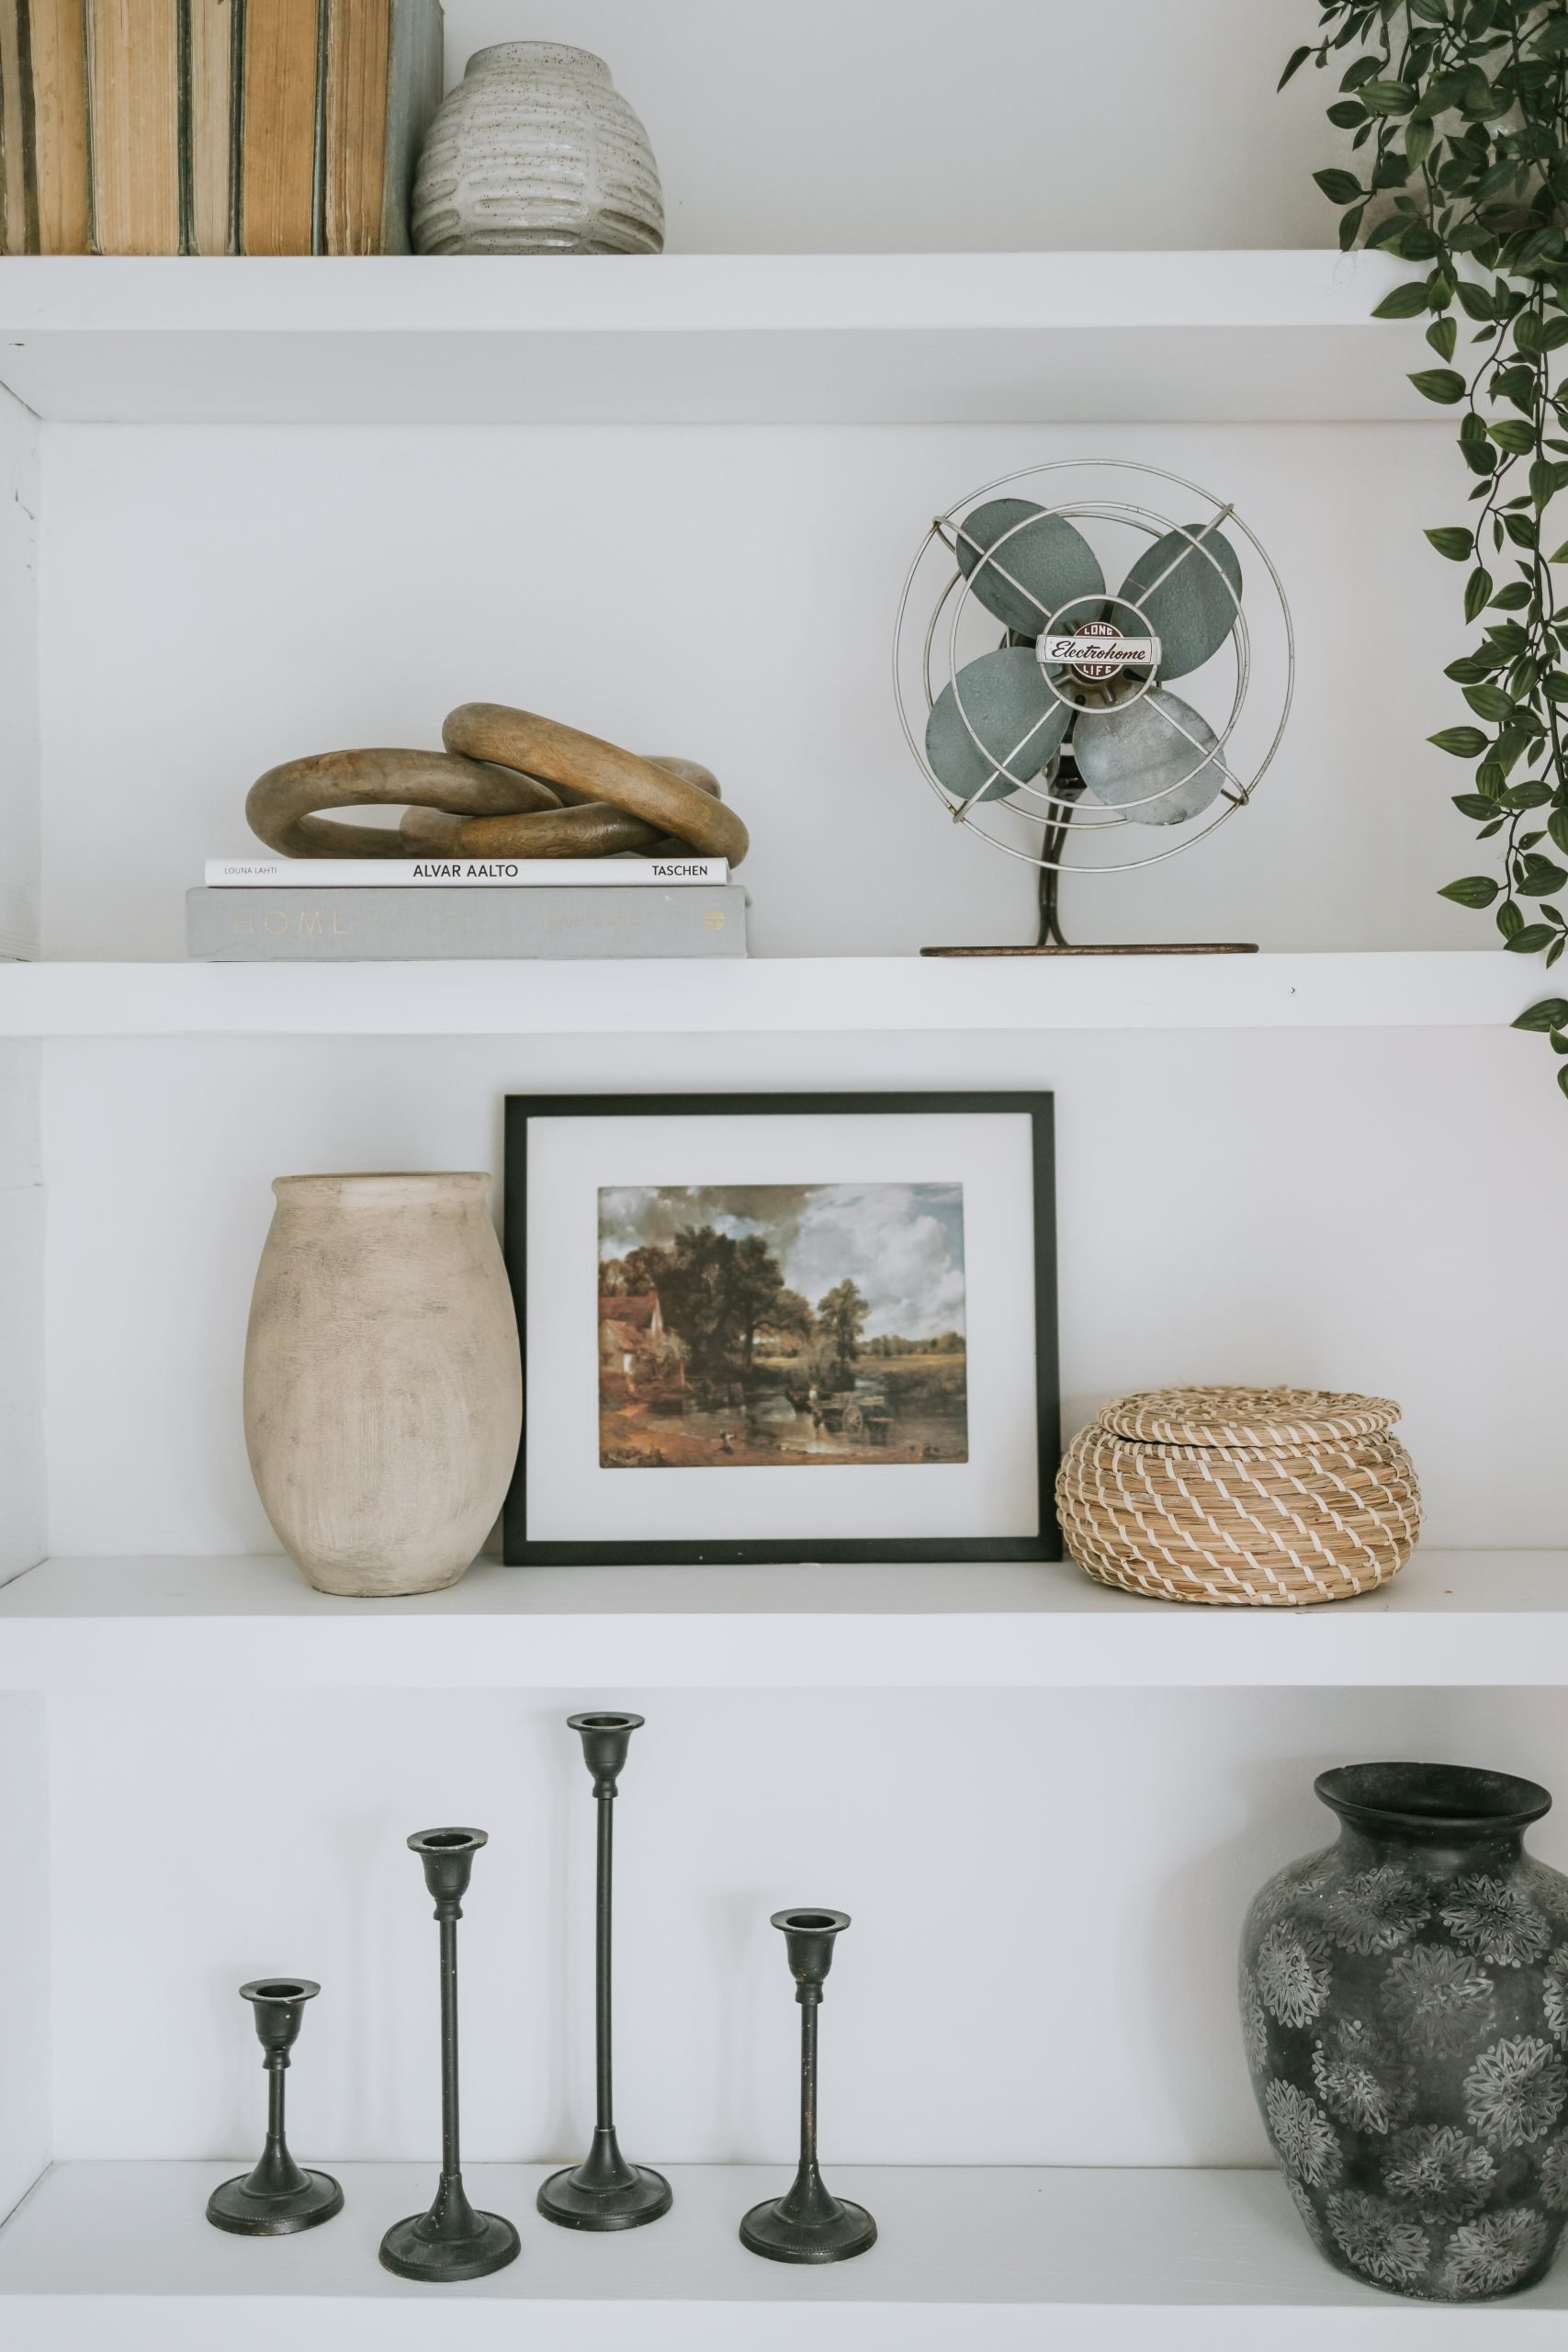 Top 10 Items To Look For At Homesense. Over the years I've saved thousands by looking for discounted items at Homesense and Homegoods. Here is my list of the top 10 items to look for when shopping!